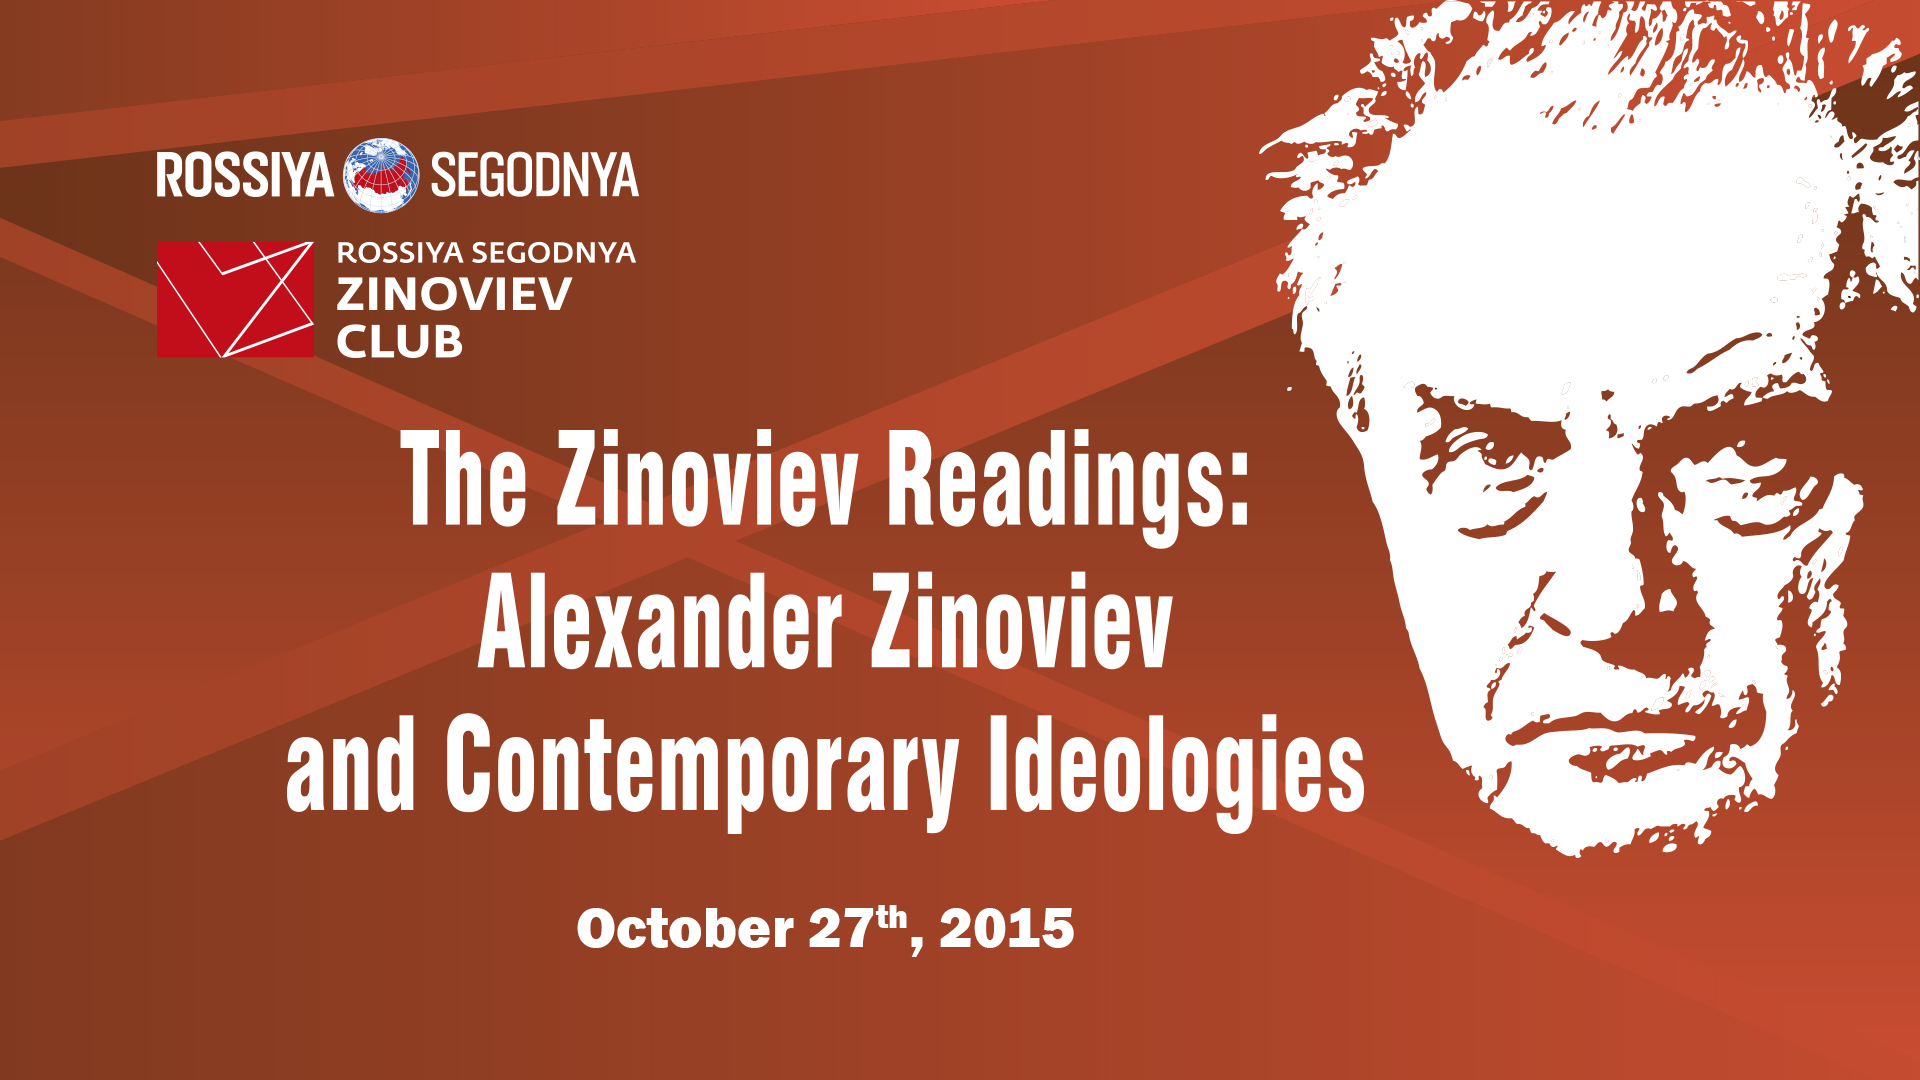 Zinoviev Readings: Alexander Zinoviev and Contemporary Ideologies